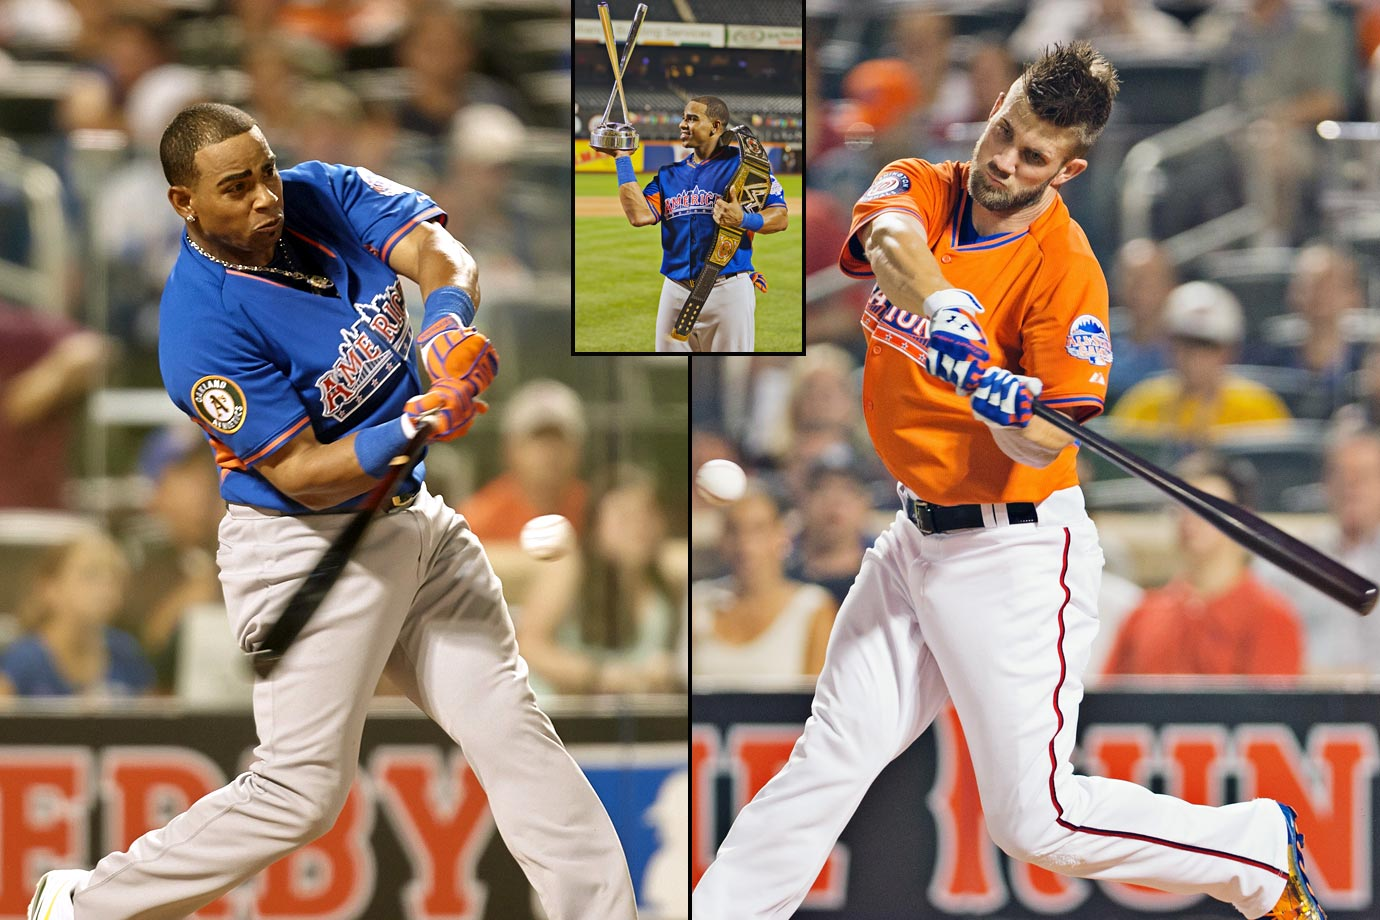 Yoenis Cespedes became the first player left out of the All-Star Game to take home the crown, needing just five outs to pass Bryce Harper in the finals with a 455 foot  shot to center field. In only his second major league season, the outfielder from Cuba hit a whopping 17 home runs in the first round—more than any other player managed in their first two trips to the plate. Cespedes would go on to win again next year.